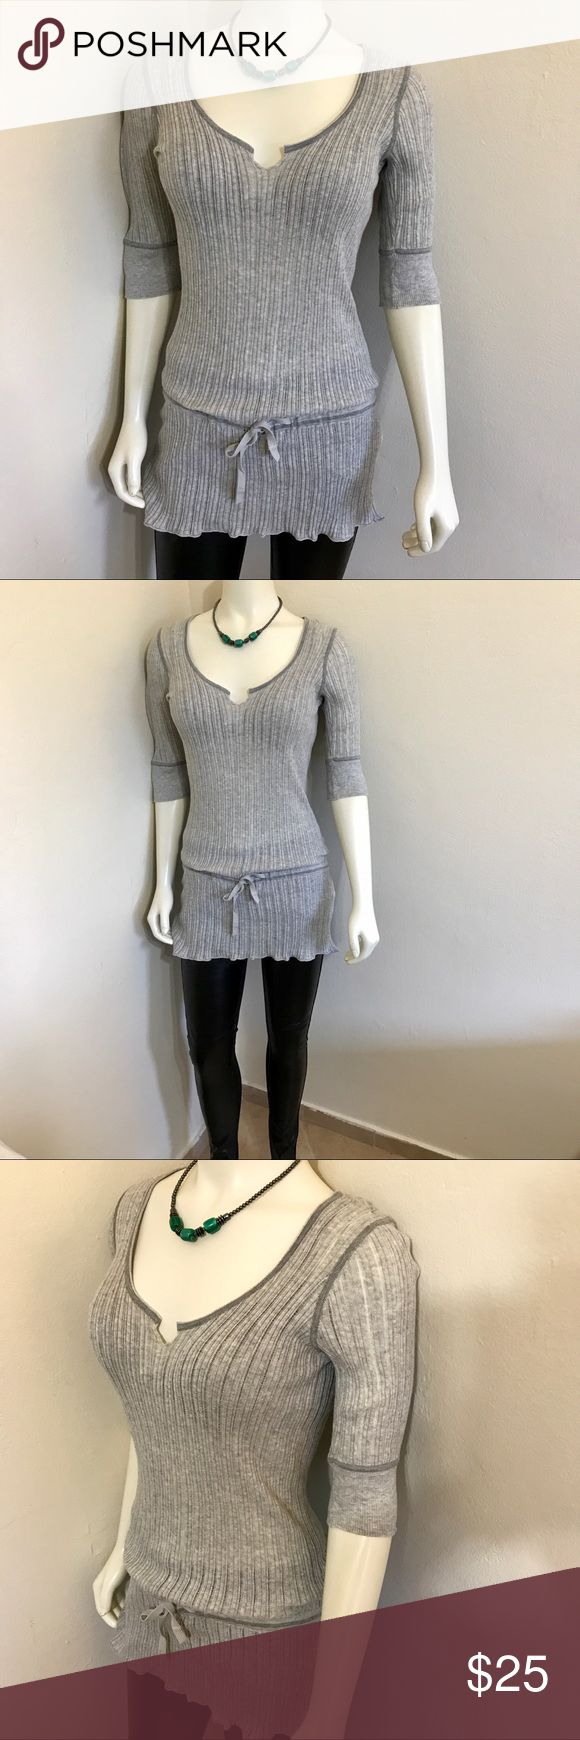 Armani Exchange Tunic Top Gray Sweater  L NWOT Label-Armani Exchange Style-Thin Gage Short Sleeve Sweater Dress, Tunic Top. Can be worn with as a dress or over leggings/skirt like a tunic. I have 4 of these in 4 different colors. All the same size.  Size-Large. Shown on a Size 2 5'8 mannequin. Fits a 8, 10 best Measurements-B-36 W-28 Hip-36 Shoulder to hem-24 All measurements unstretched. Color-Gray Fabric- Very thin Ribbed 100% Cotton Knit Condition-New without tags.  Origin-Hong Kong…